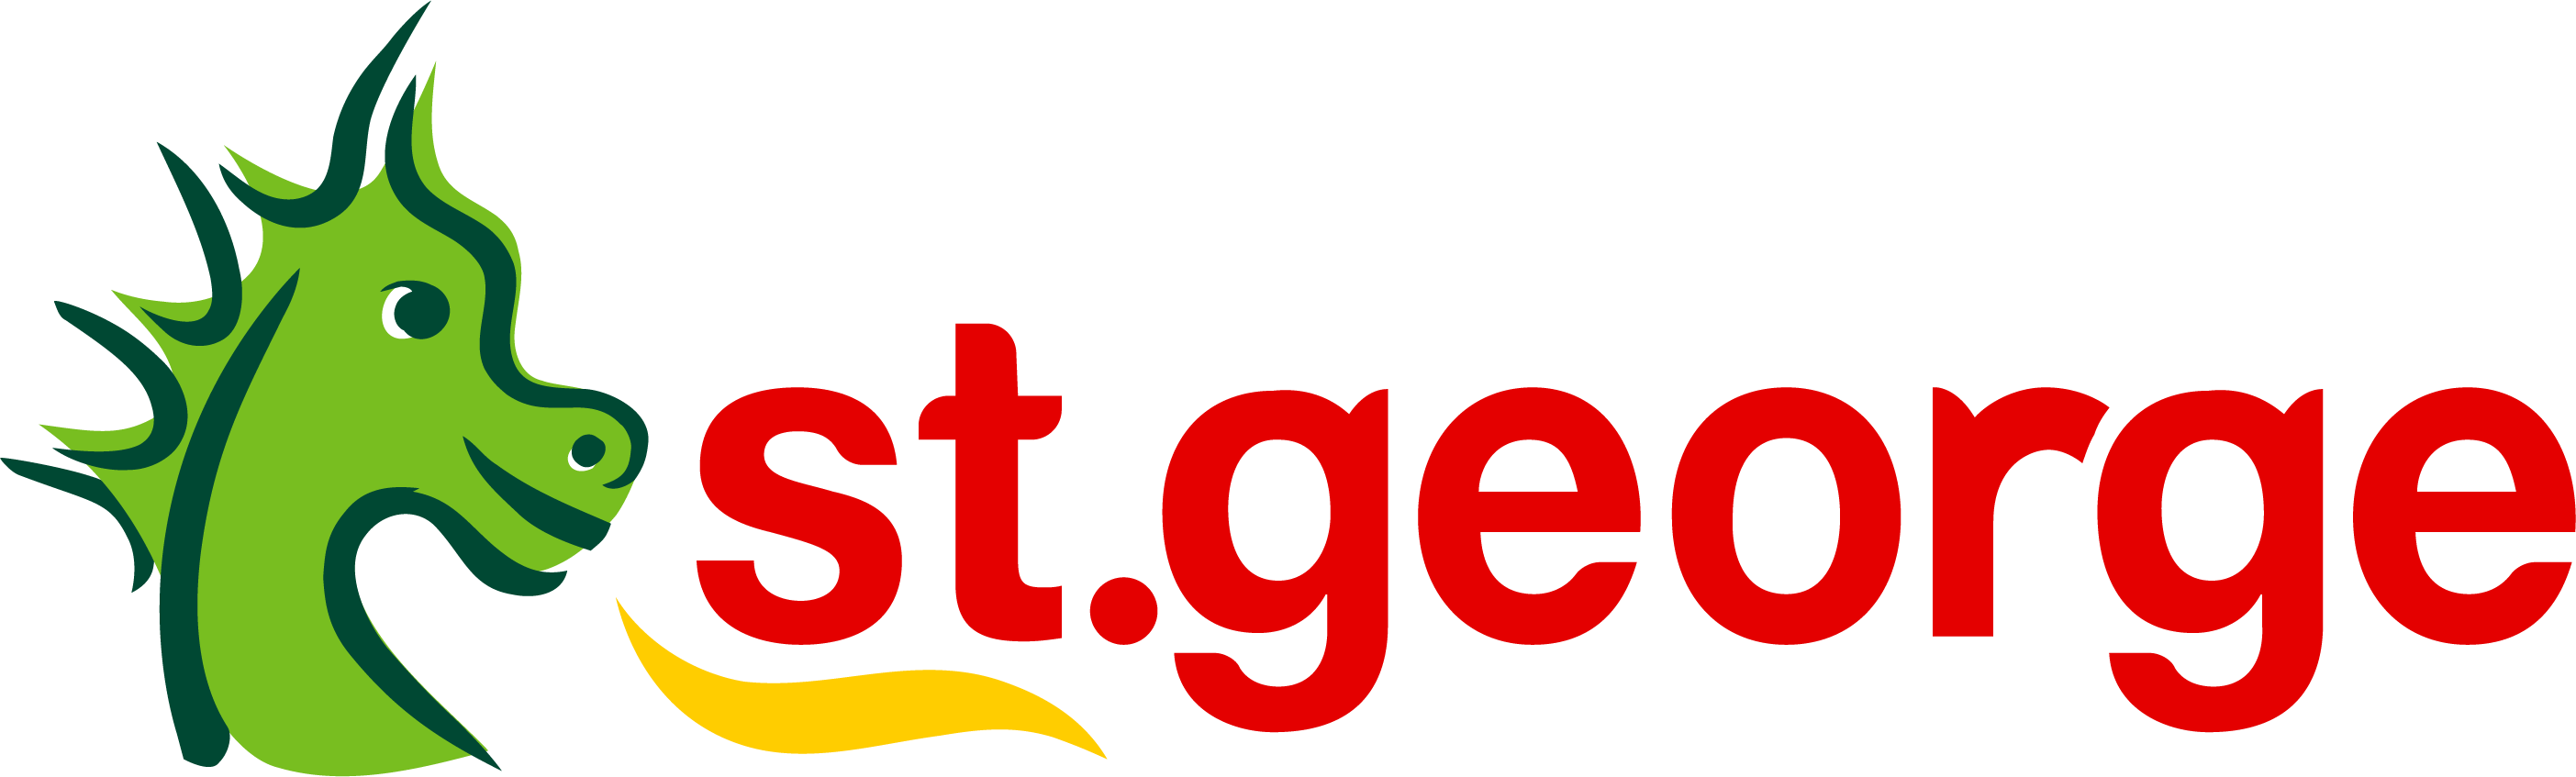 St.George Logo   Bank png